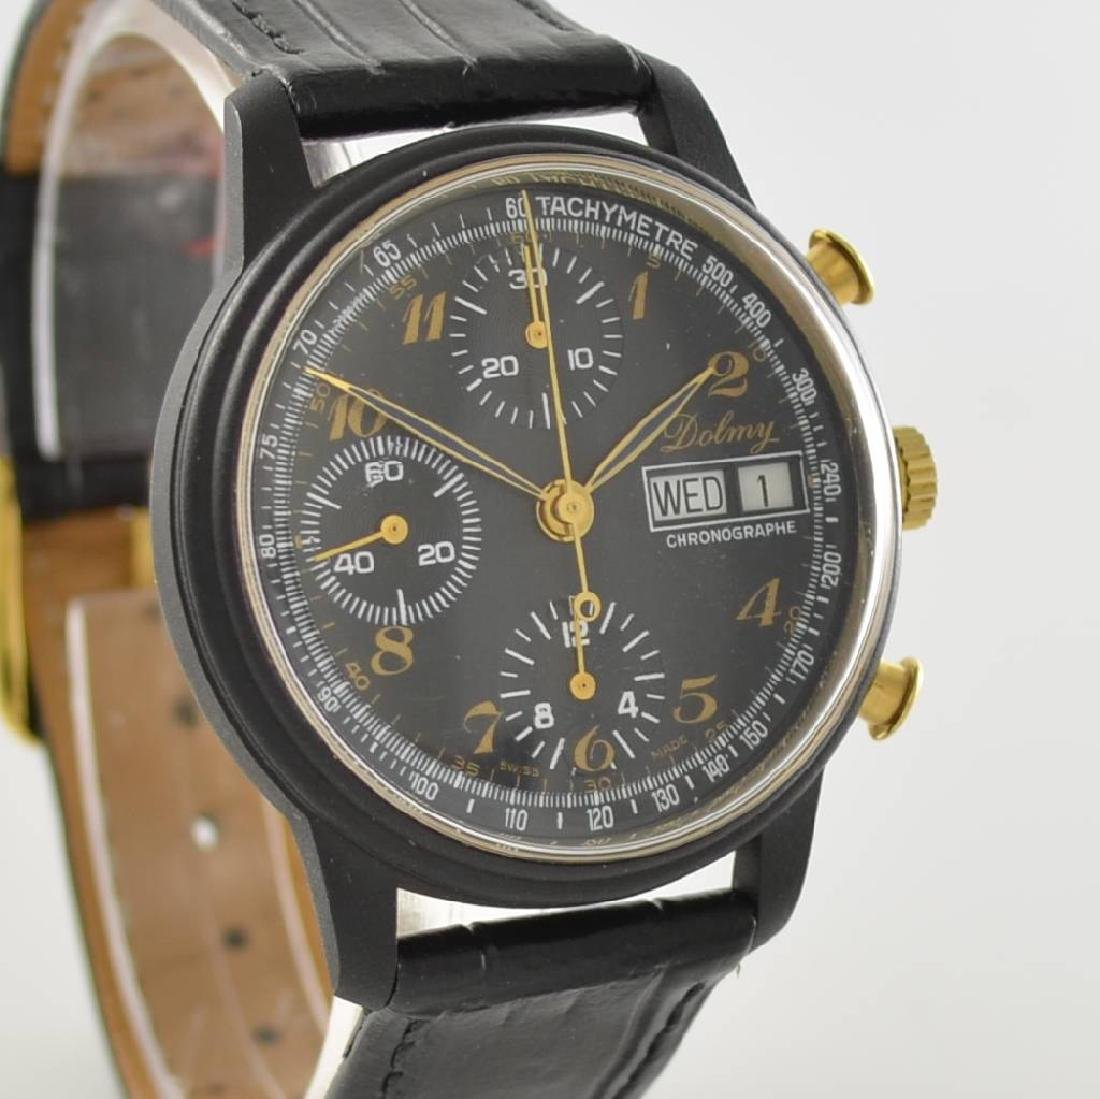 DOLMY manual wound chronograph - 6